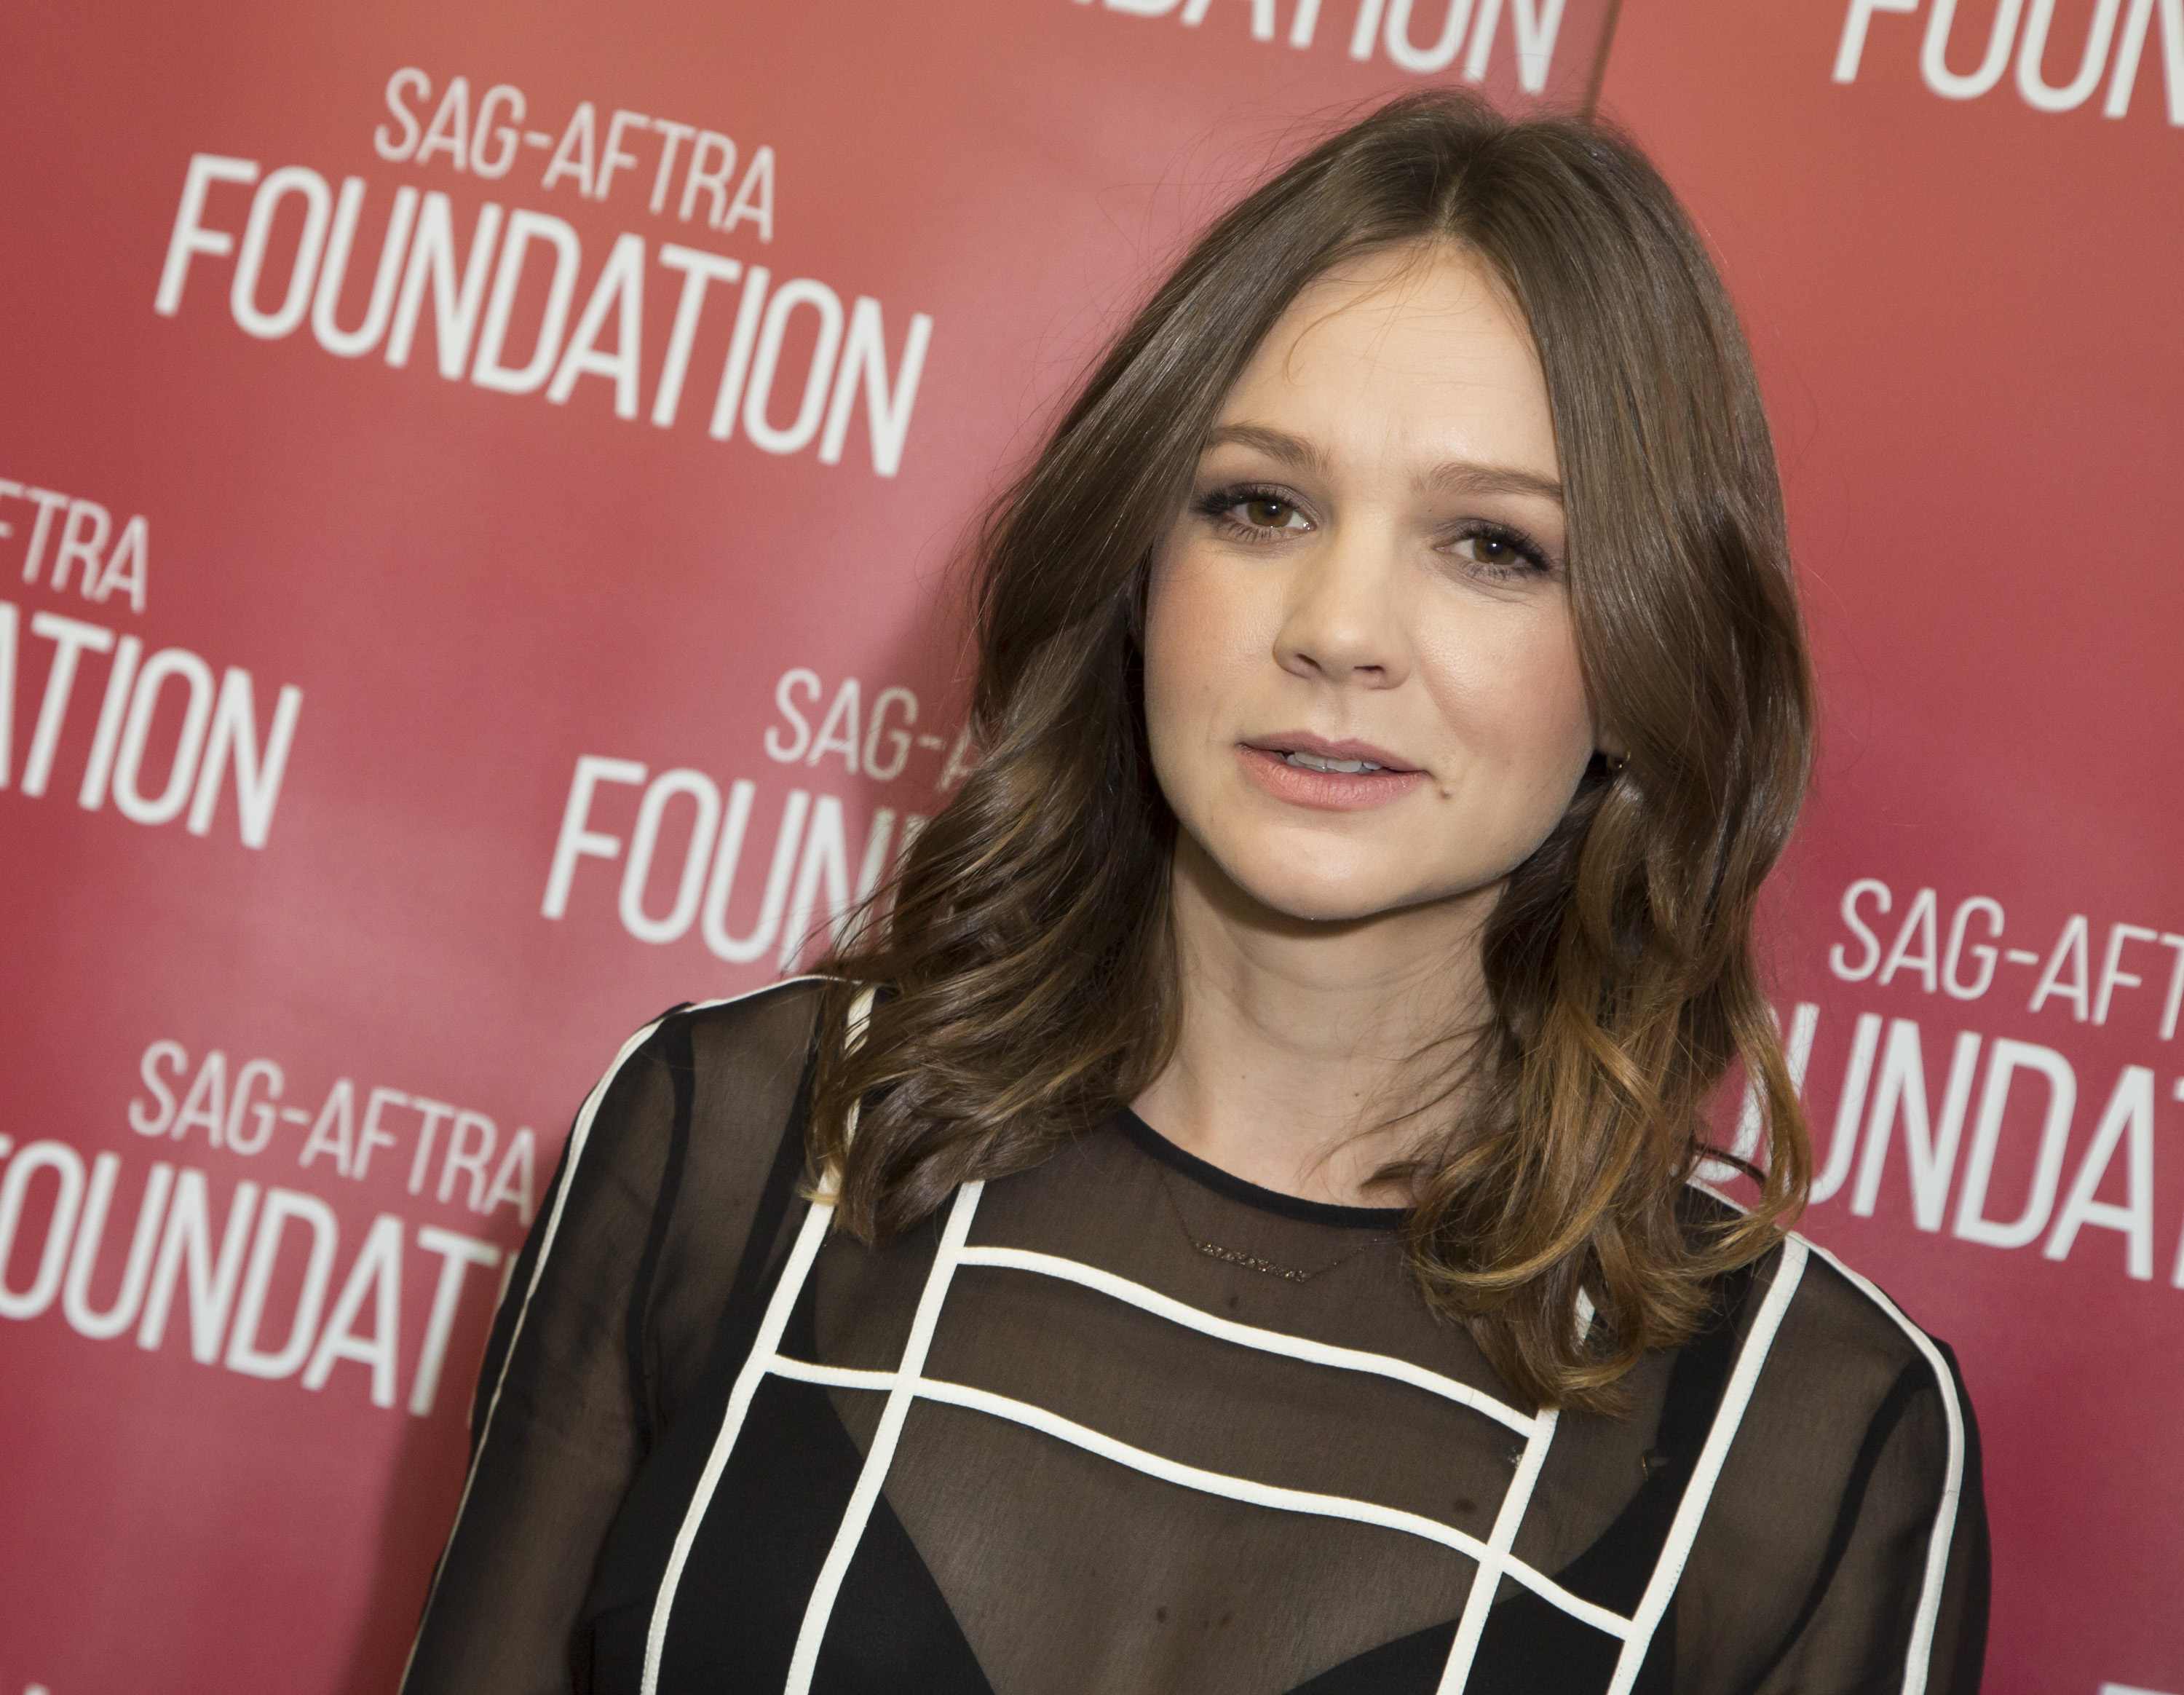 Actress Carey Mulligan attends the SAG-AFTRA Foundation conversation in Los Angeles, California.